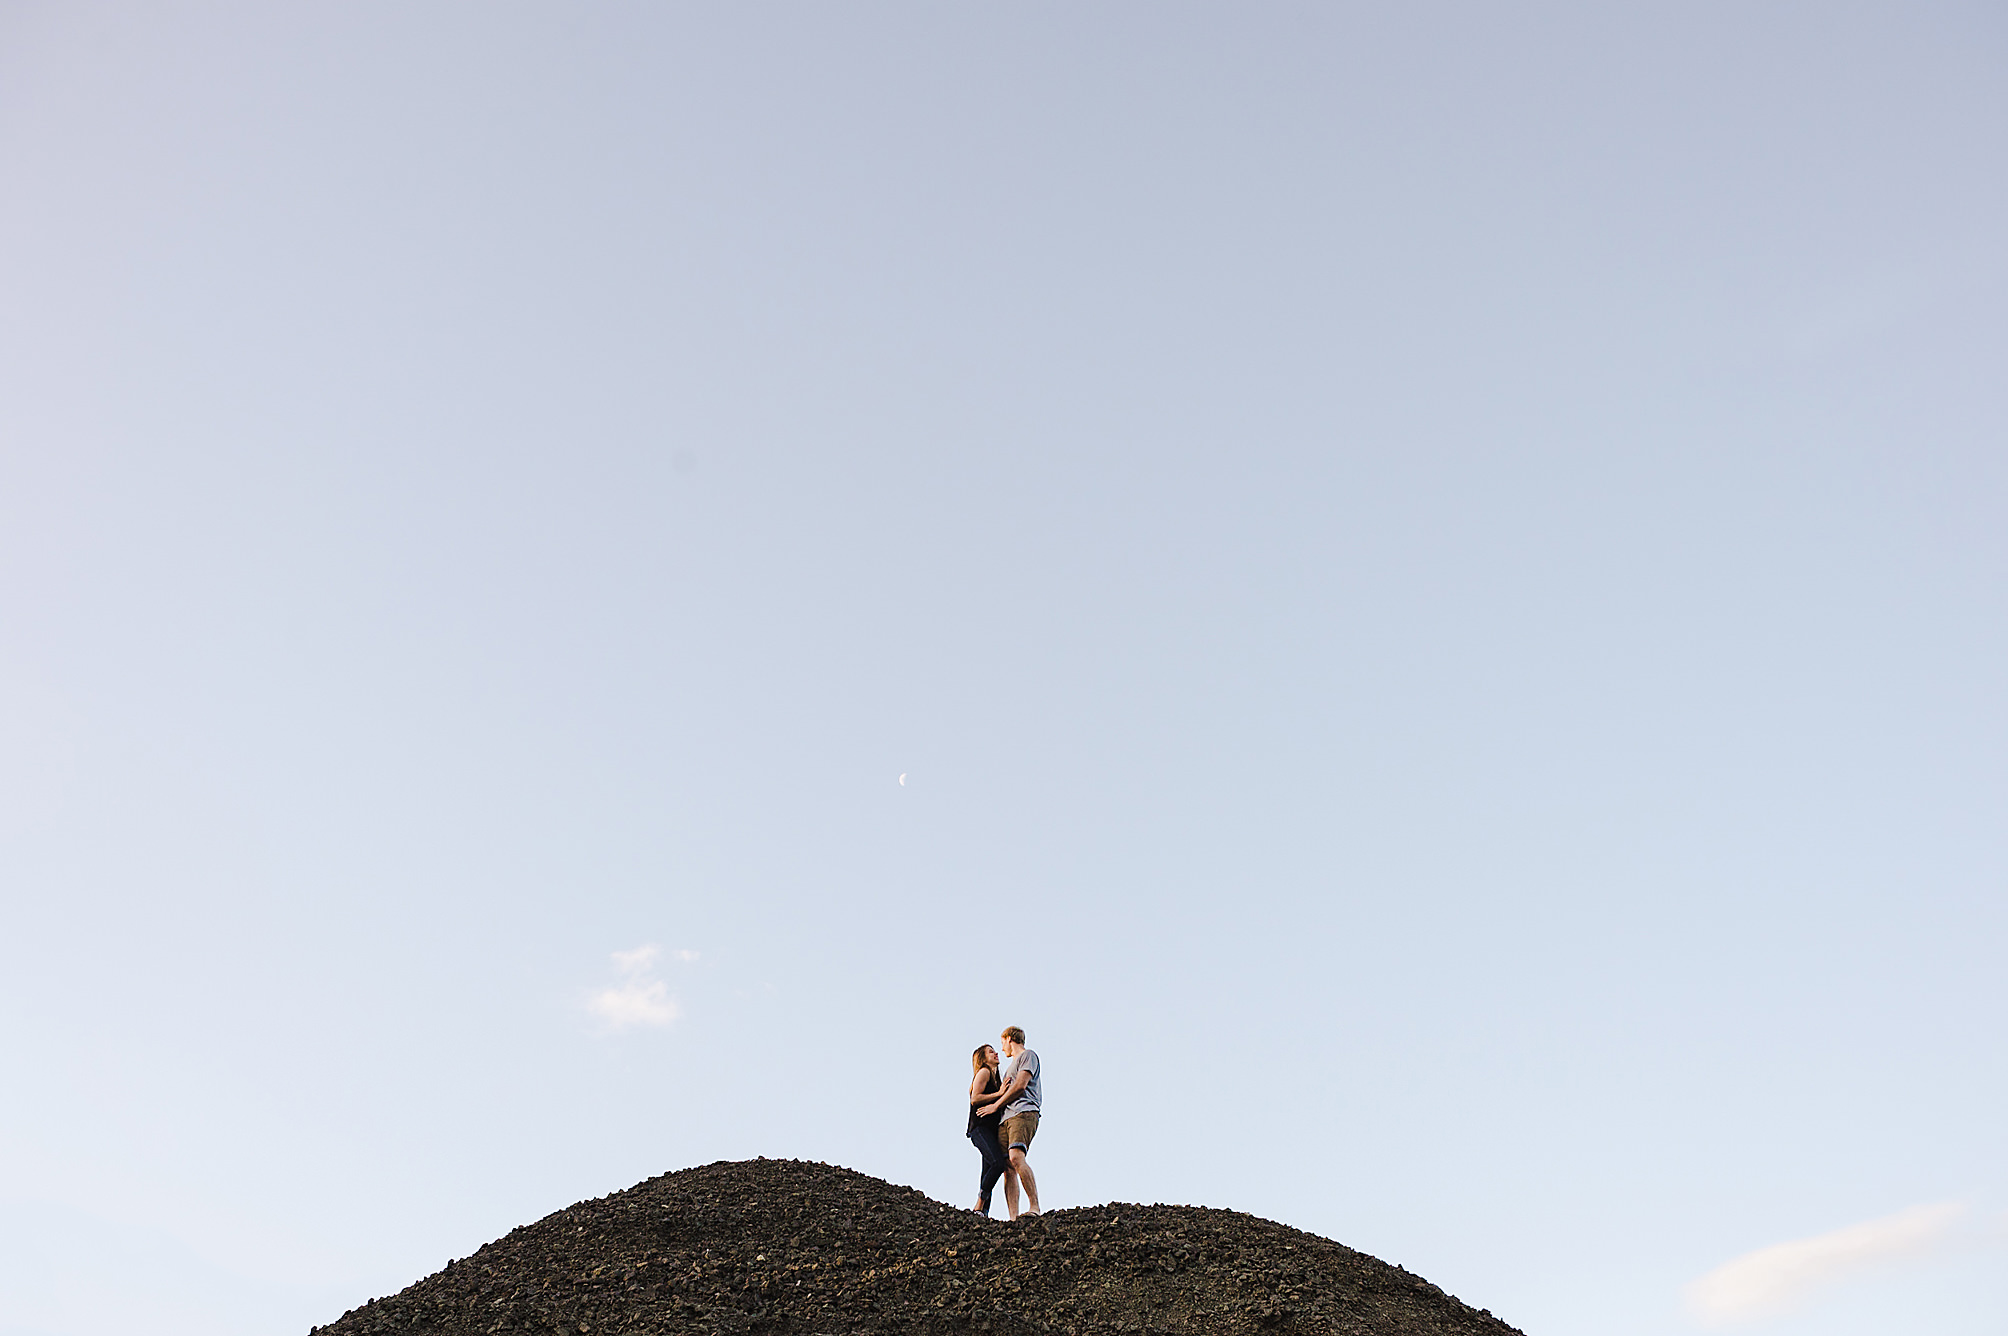 8a couple on the moon flying in the sky.jpg